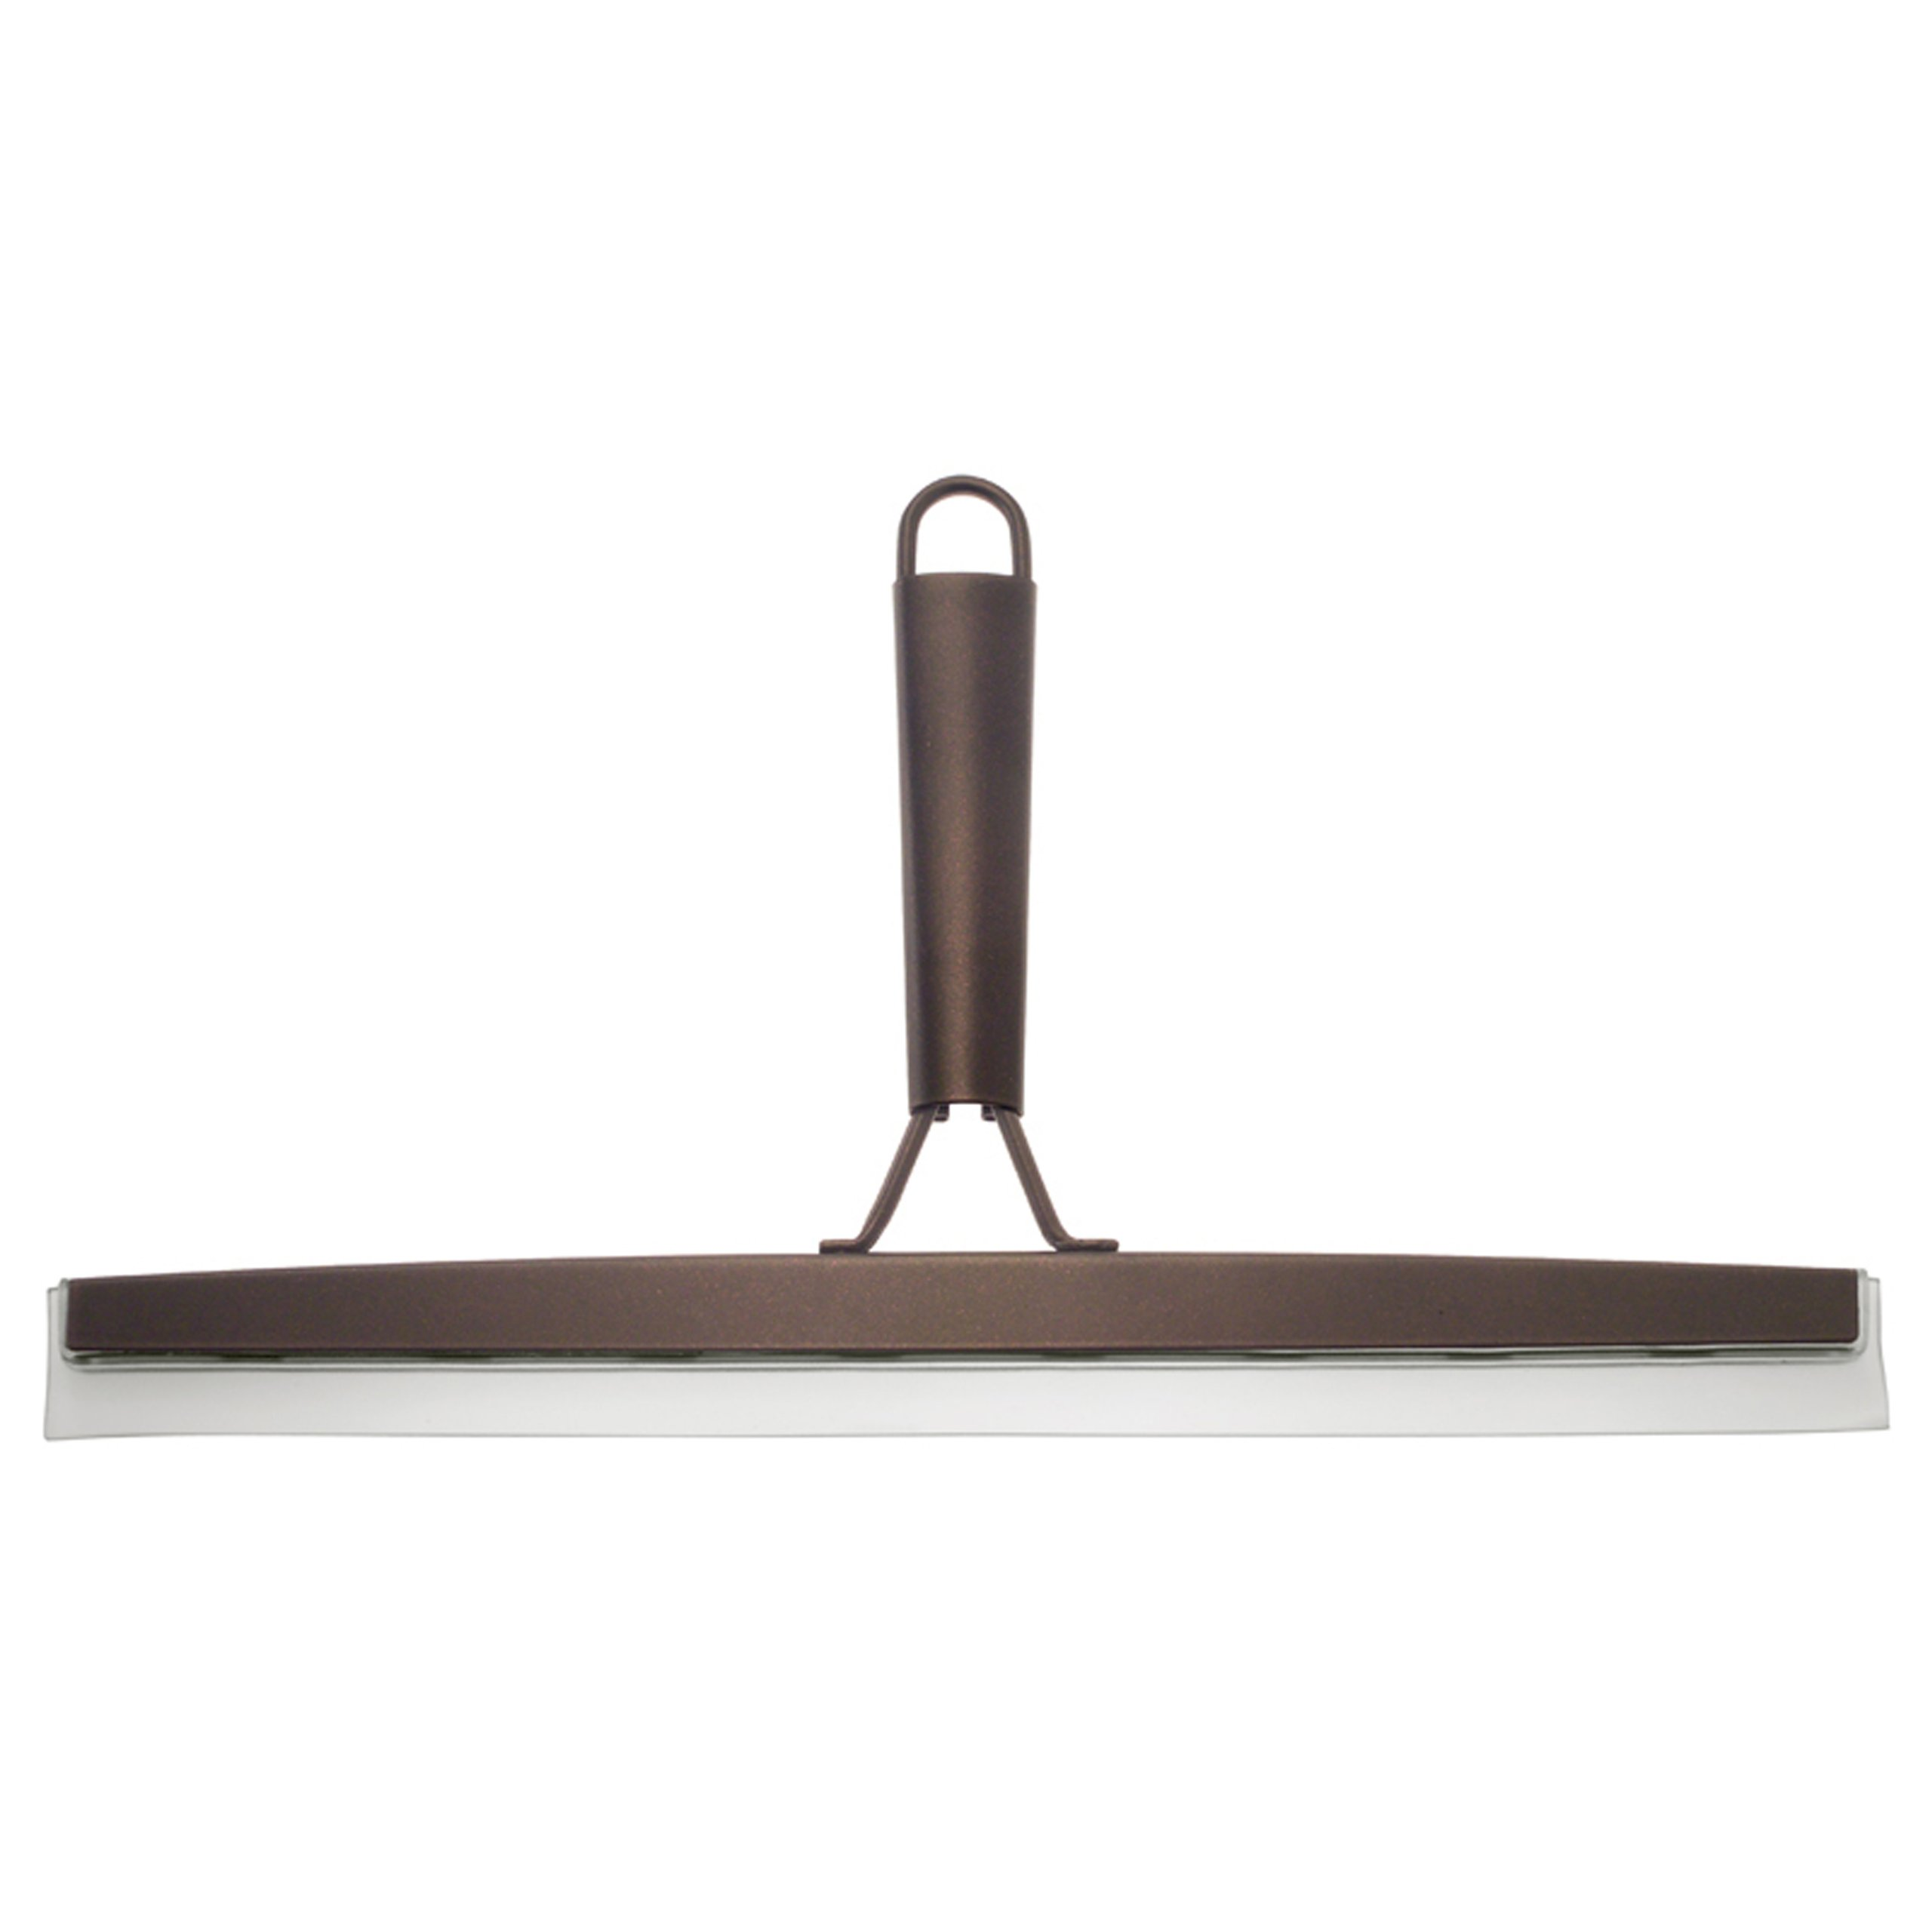 "InterDesign Forma Bathroom Shower Door, Window and Mirror Squeegee with Suction Storage Hook - 12"", Bronze"